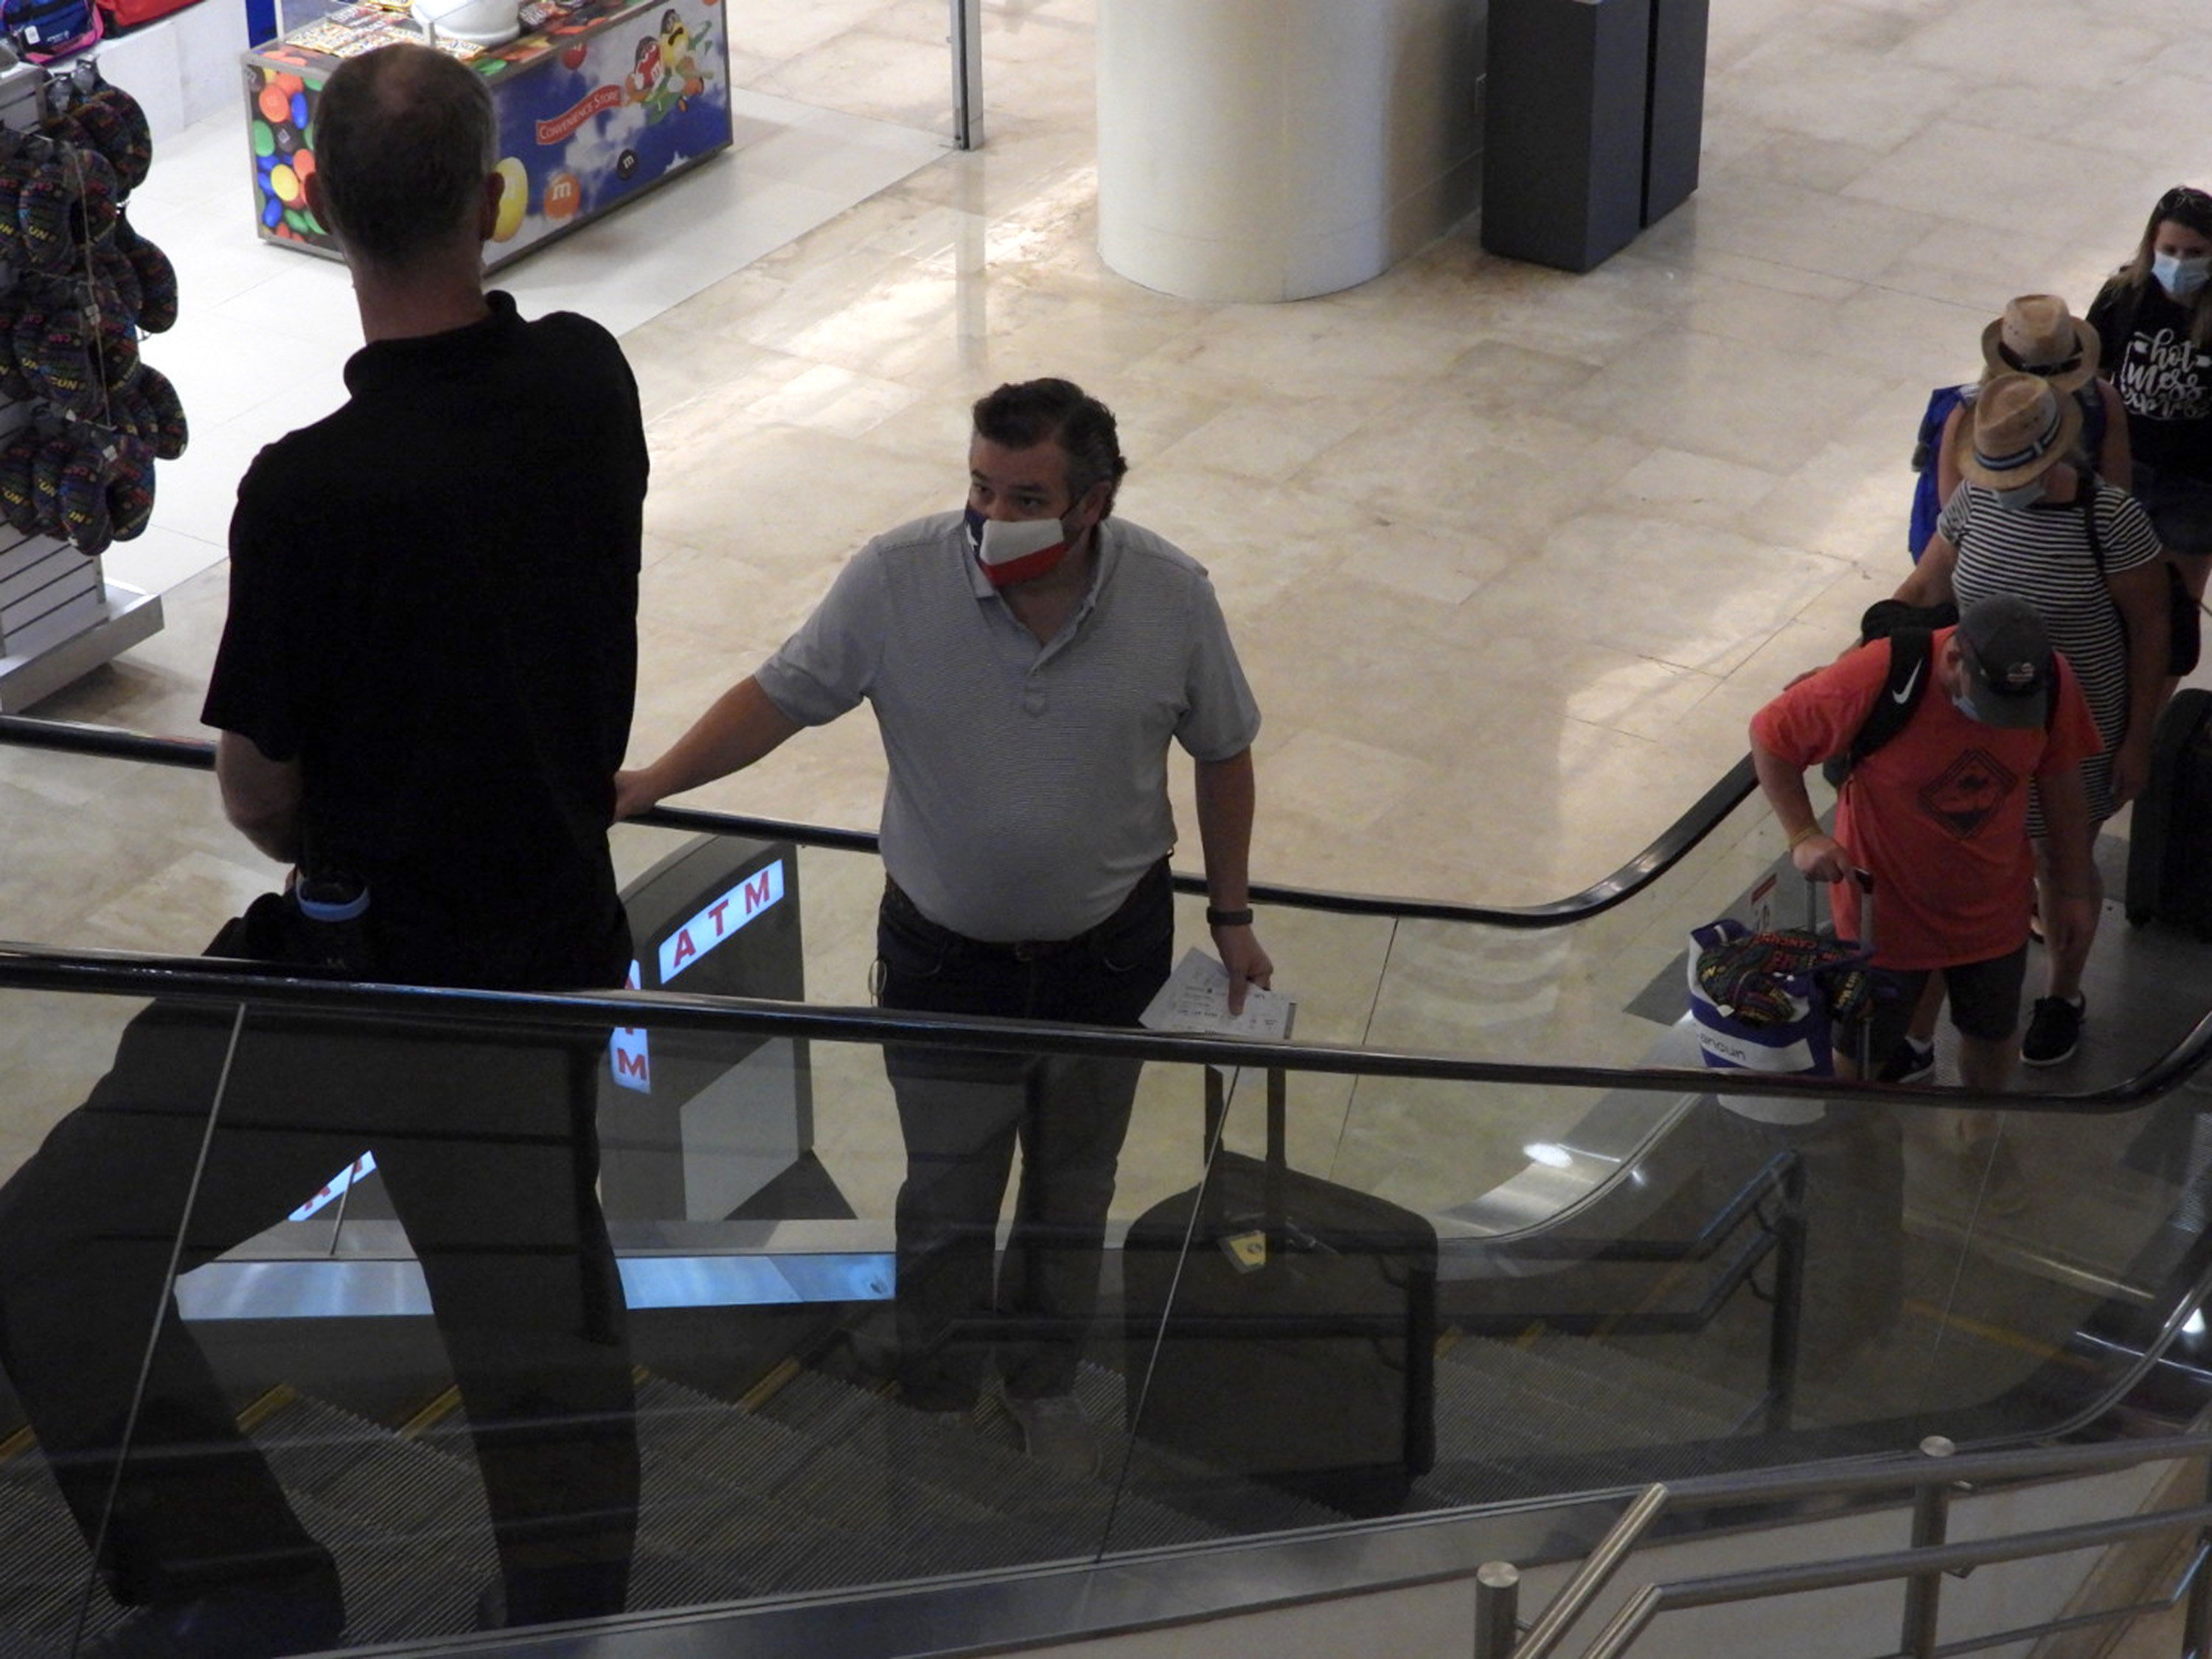 Ted Cruz rides an escalator while holding his luggage handle